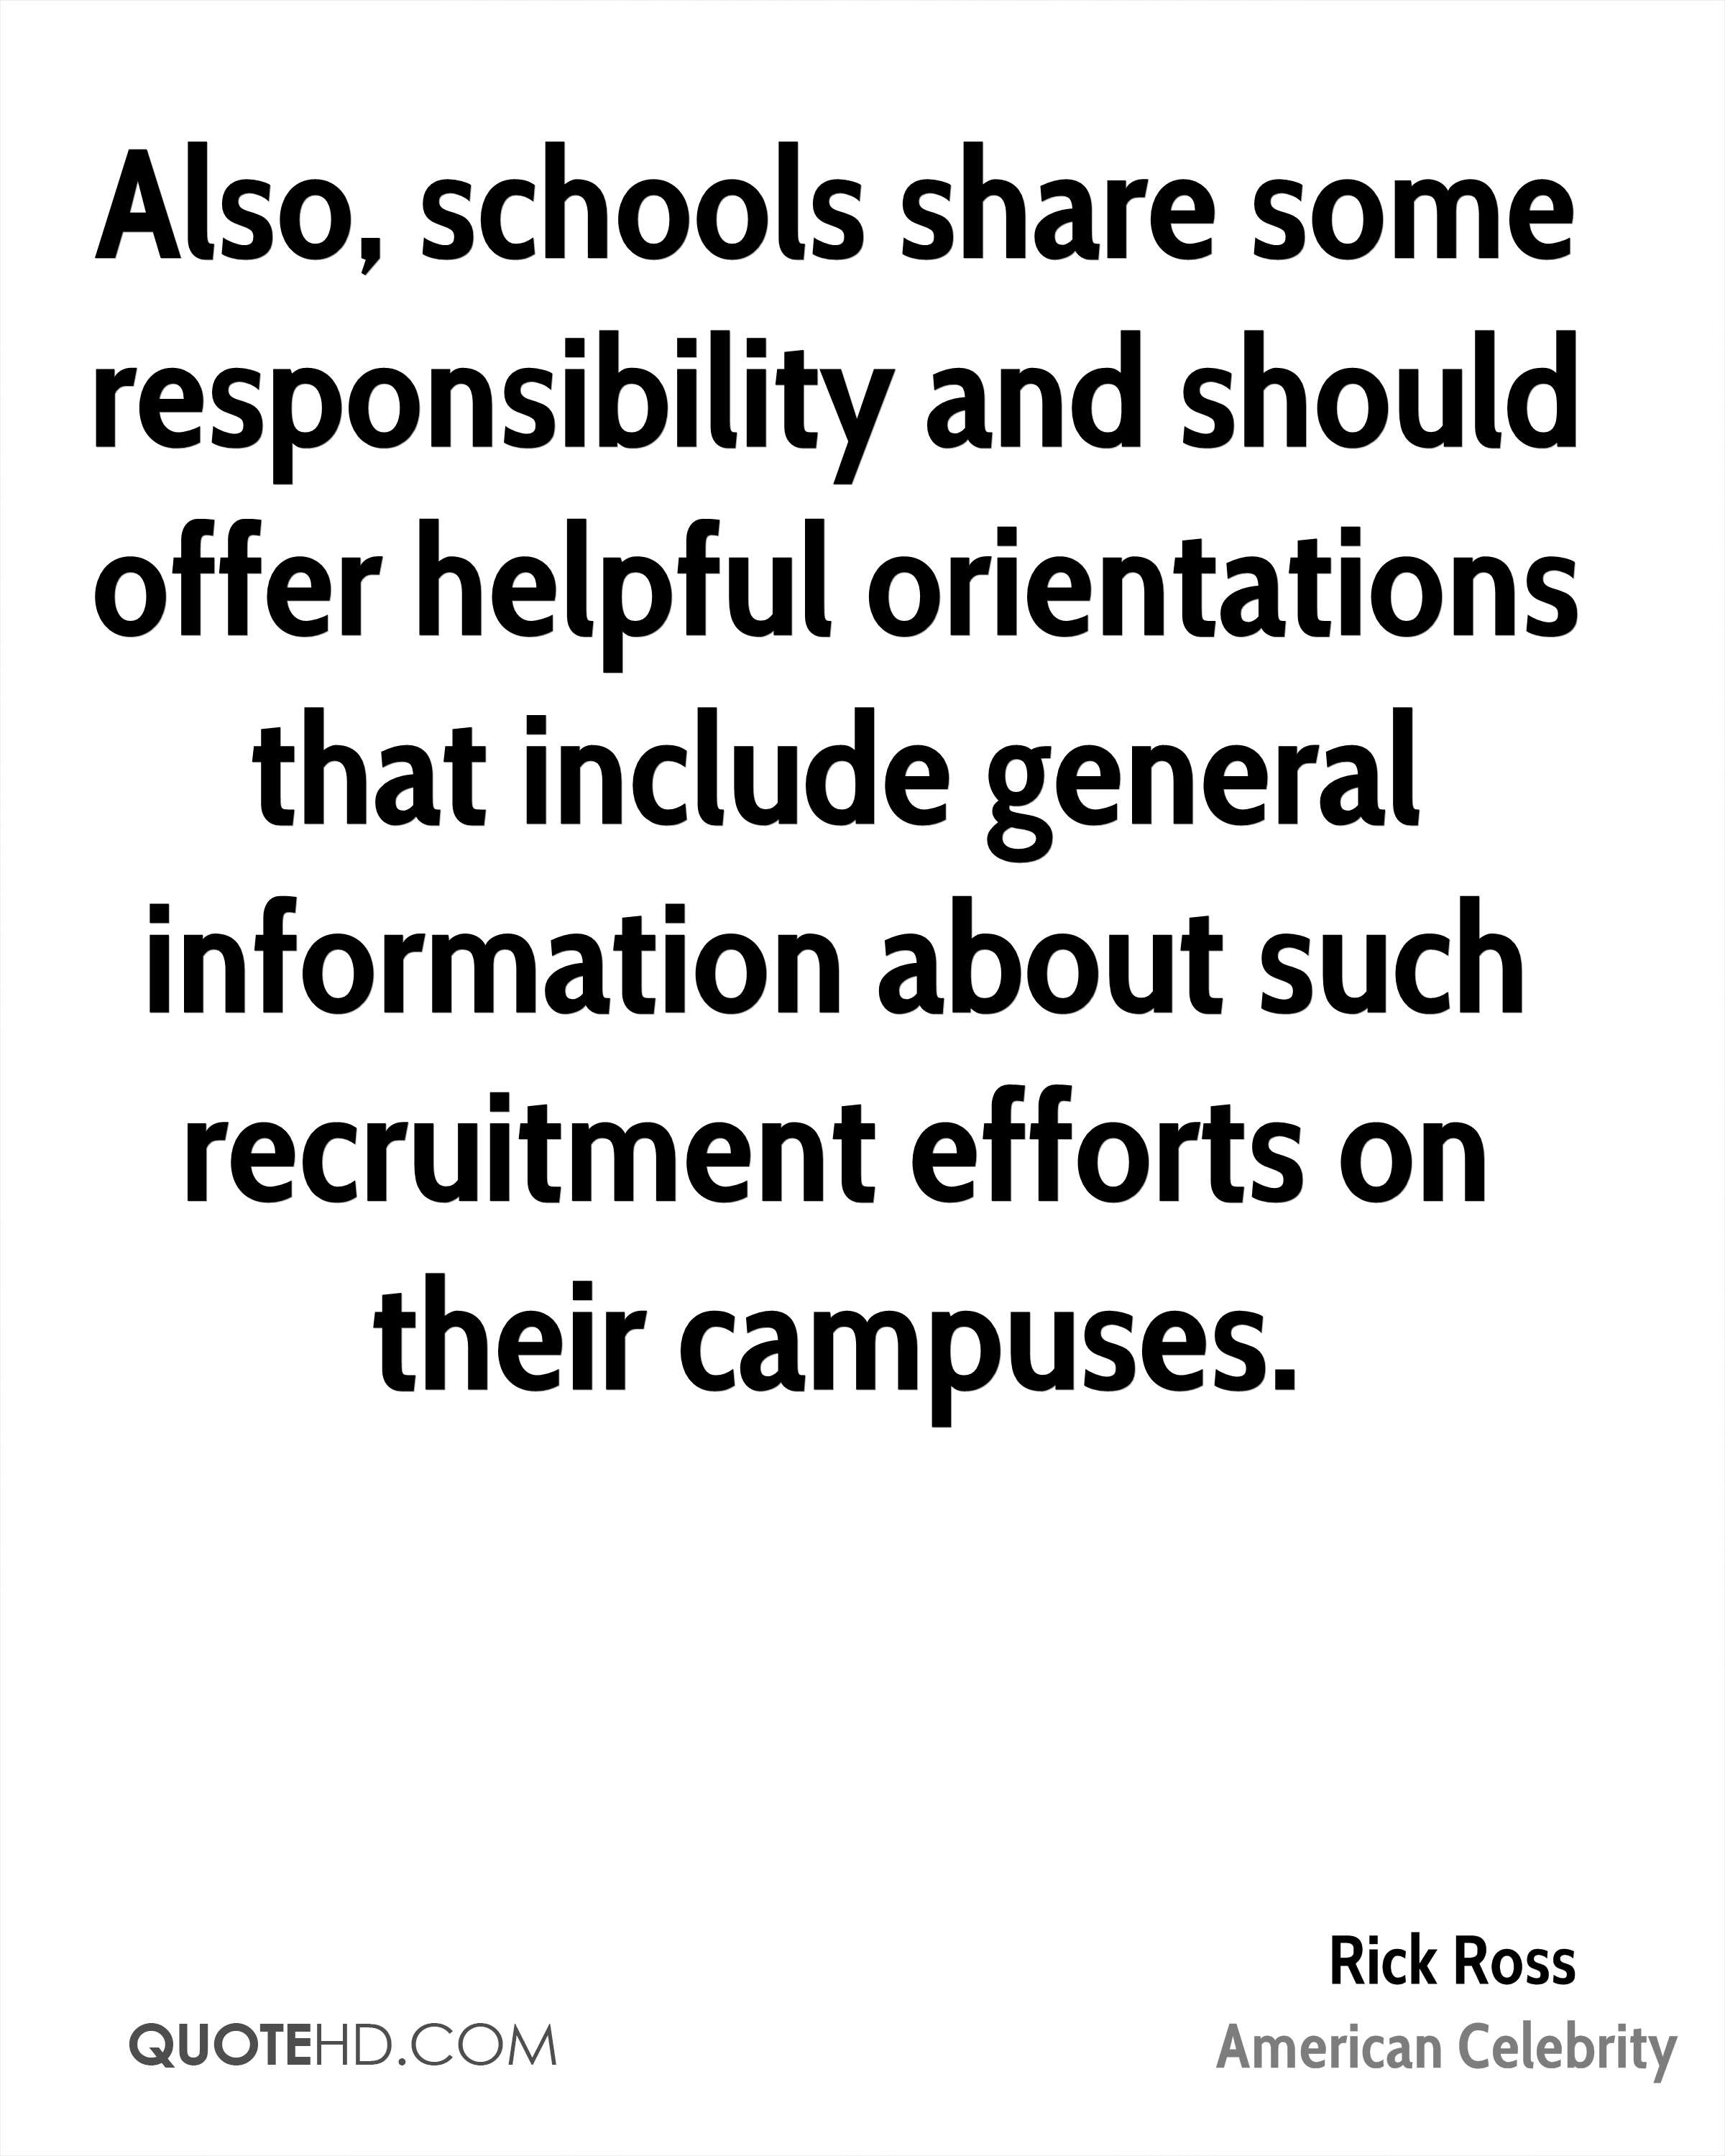 Also, schools share some responsibility and should offer helpful orientations that include general information about such recruitment efforts on their campuses.